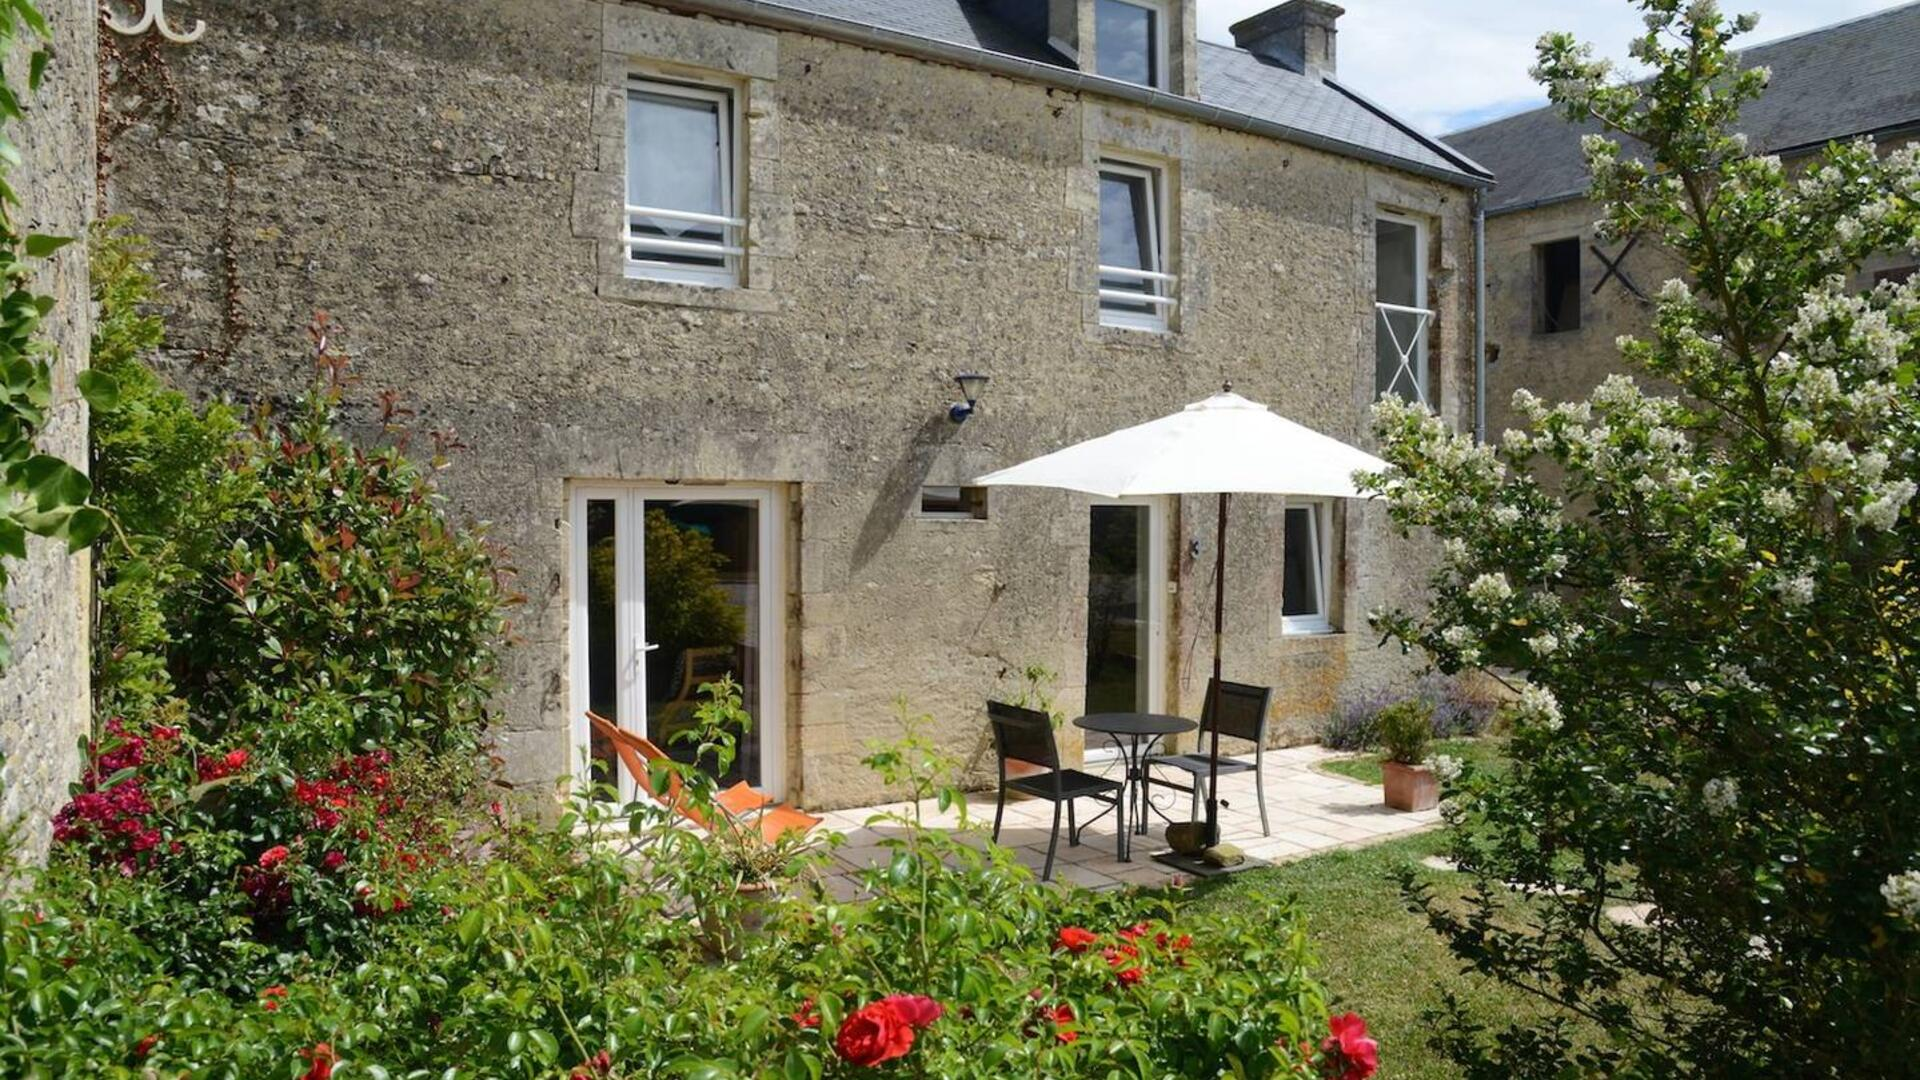 2 Bedroom Cottage/shared facilities in Normandy, France